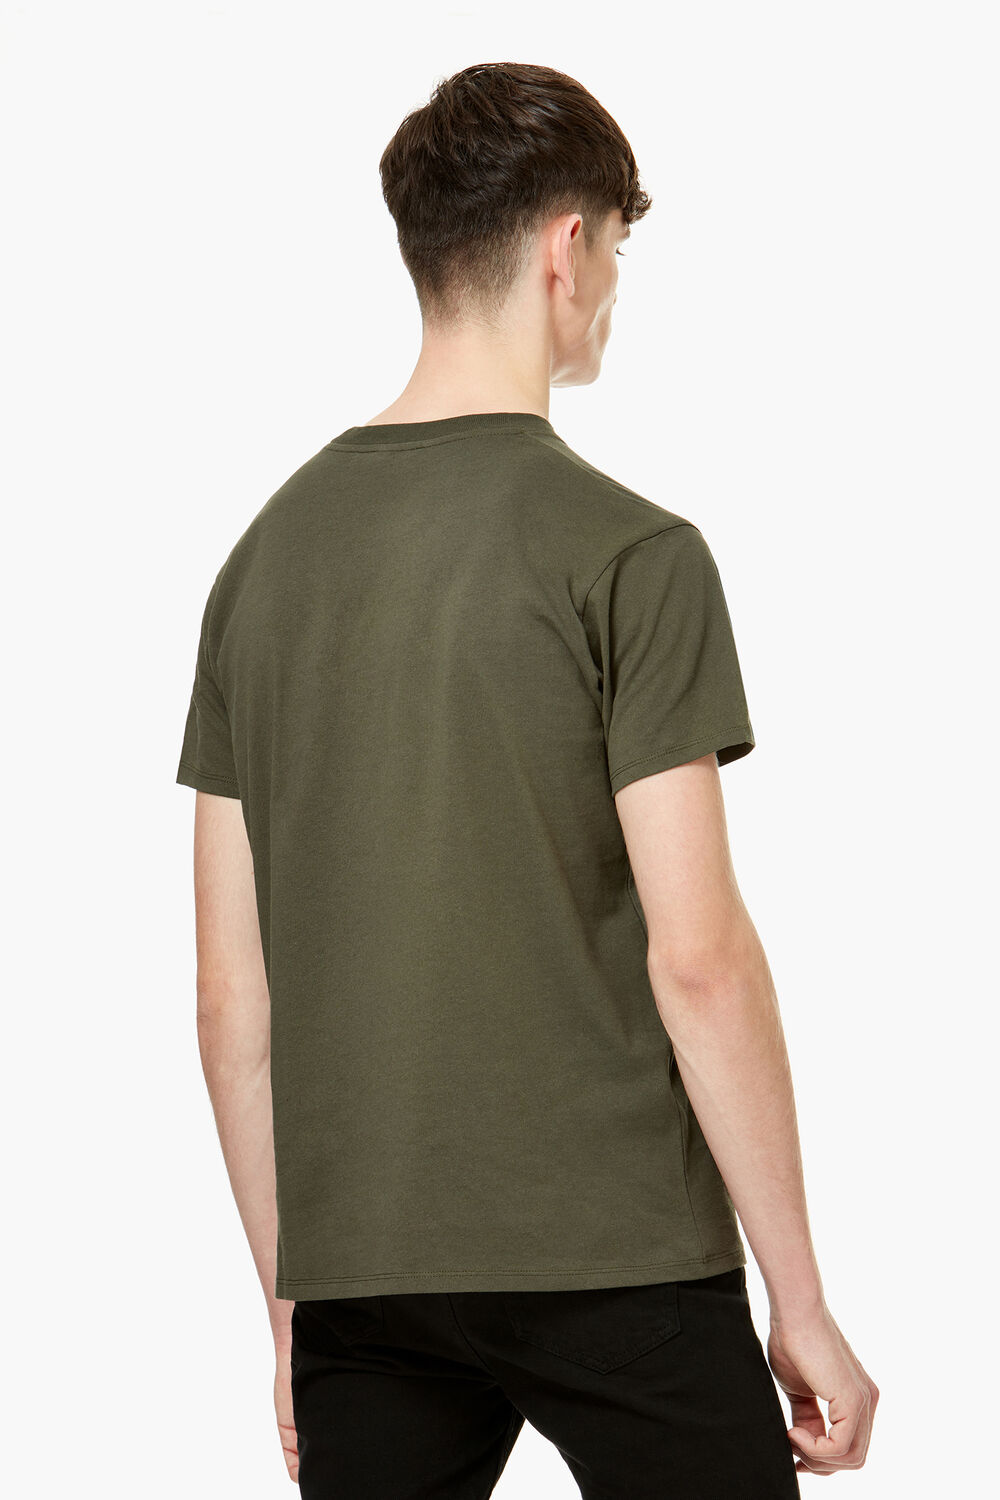 Angels T-Shirt Olive Green